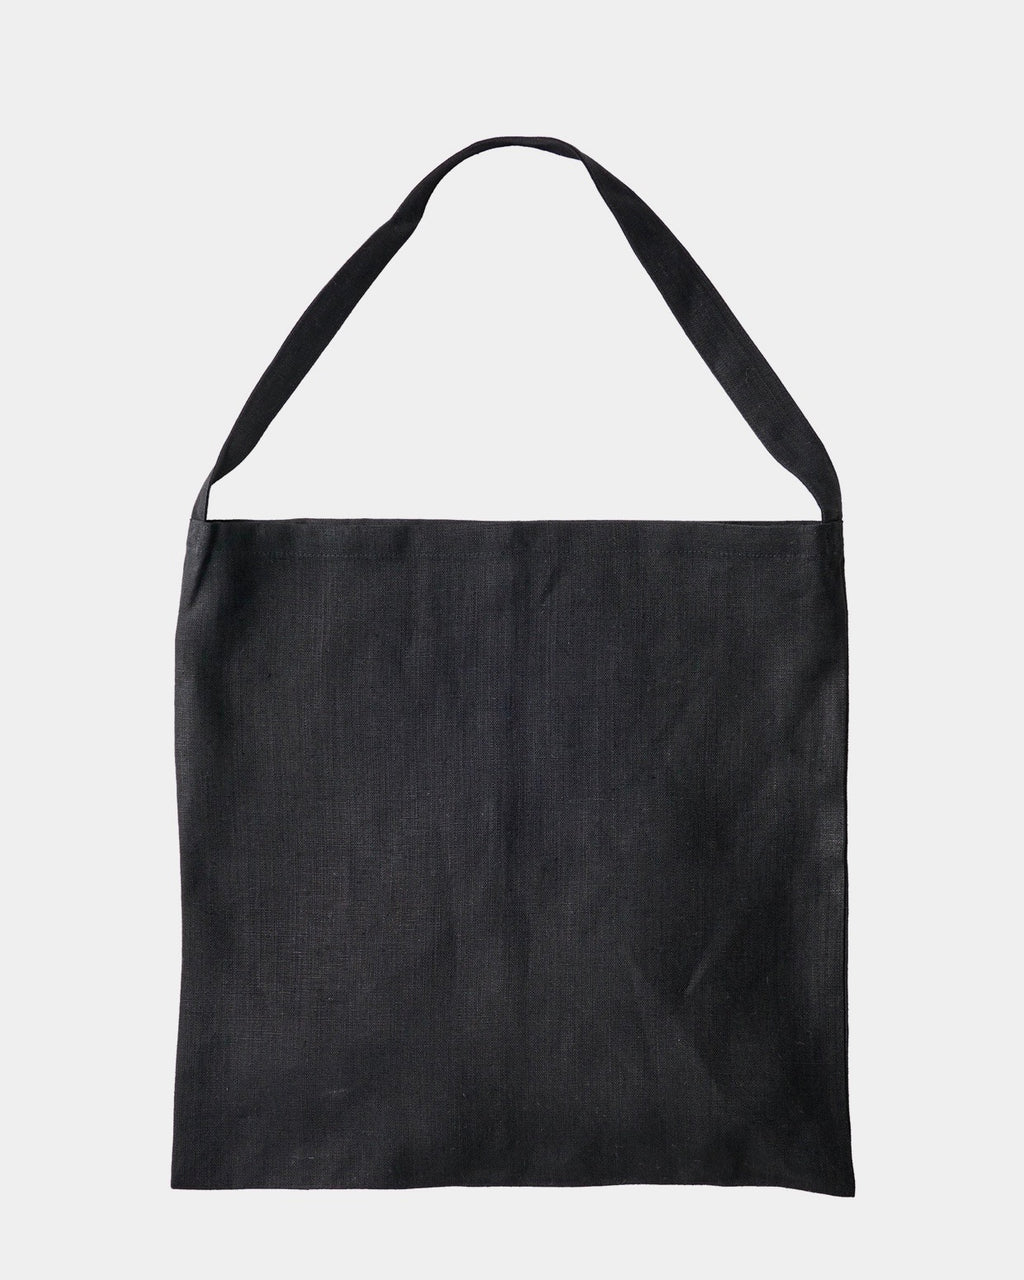 Johann Bag: Black